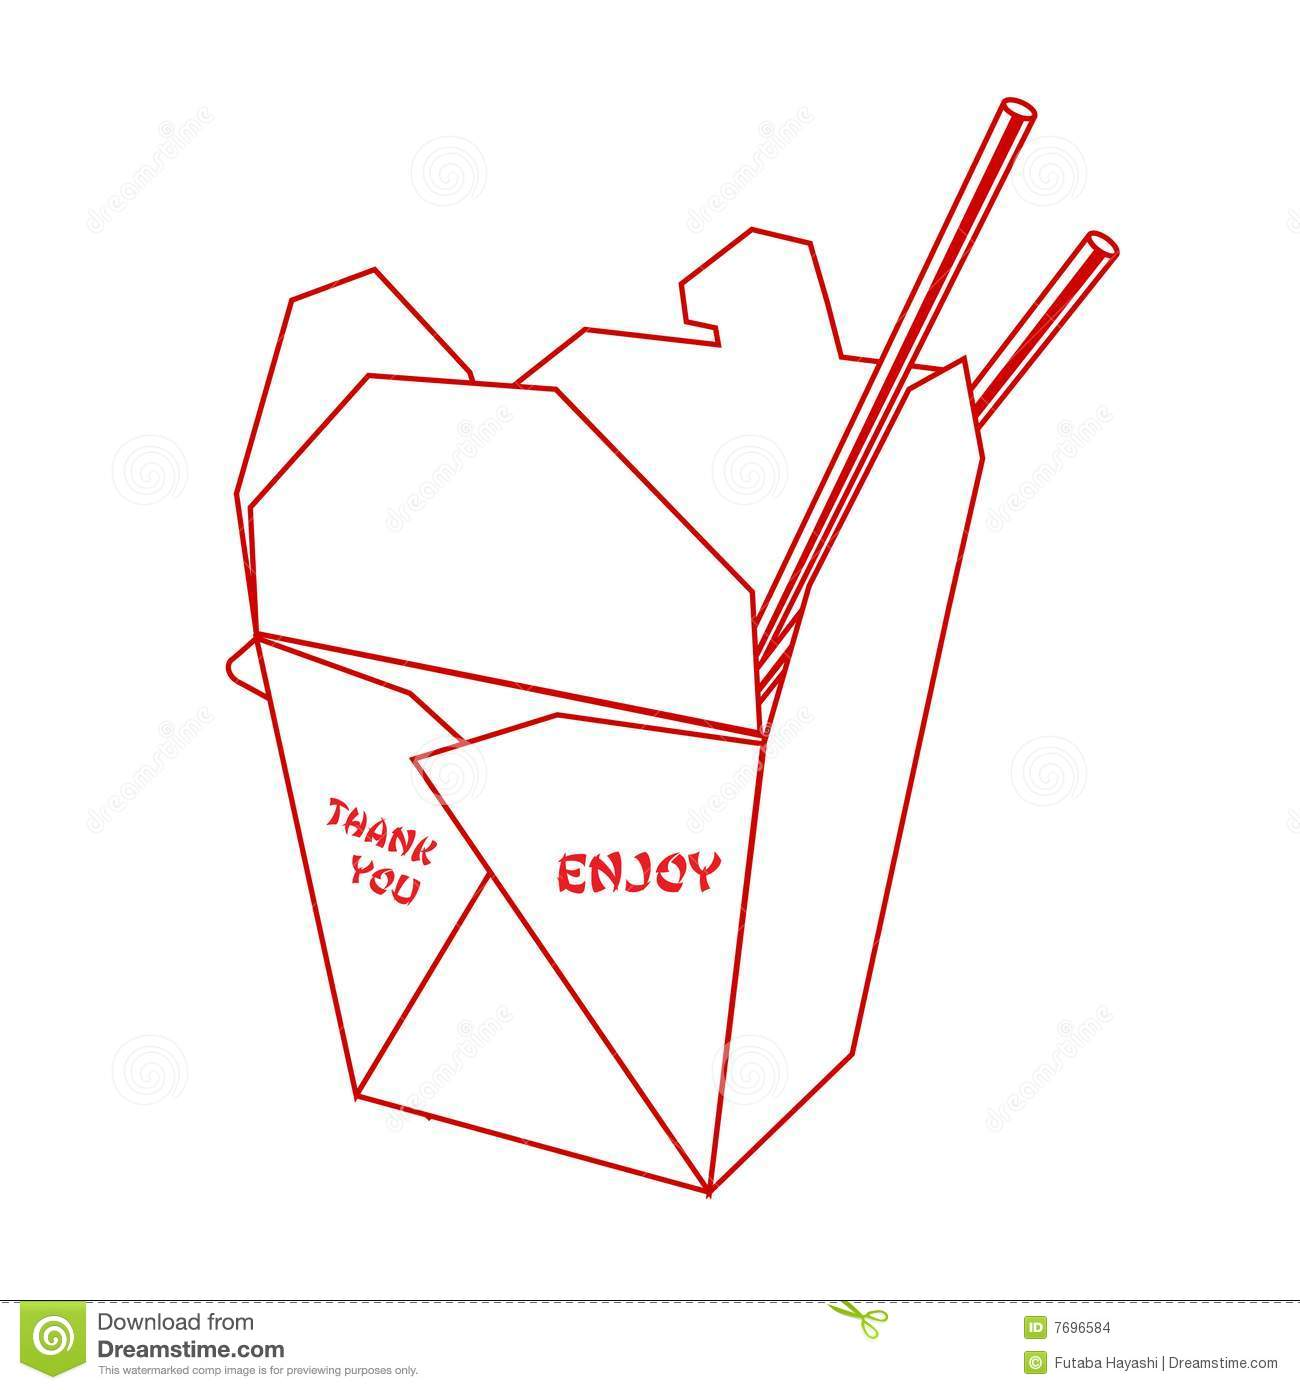 chinese-takeout-clipart-chinese-takeout-box-stock-iVyZ0I-clipart.jpg